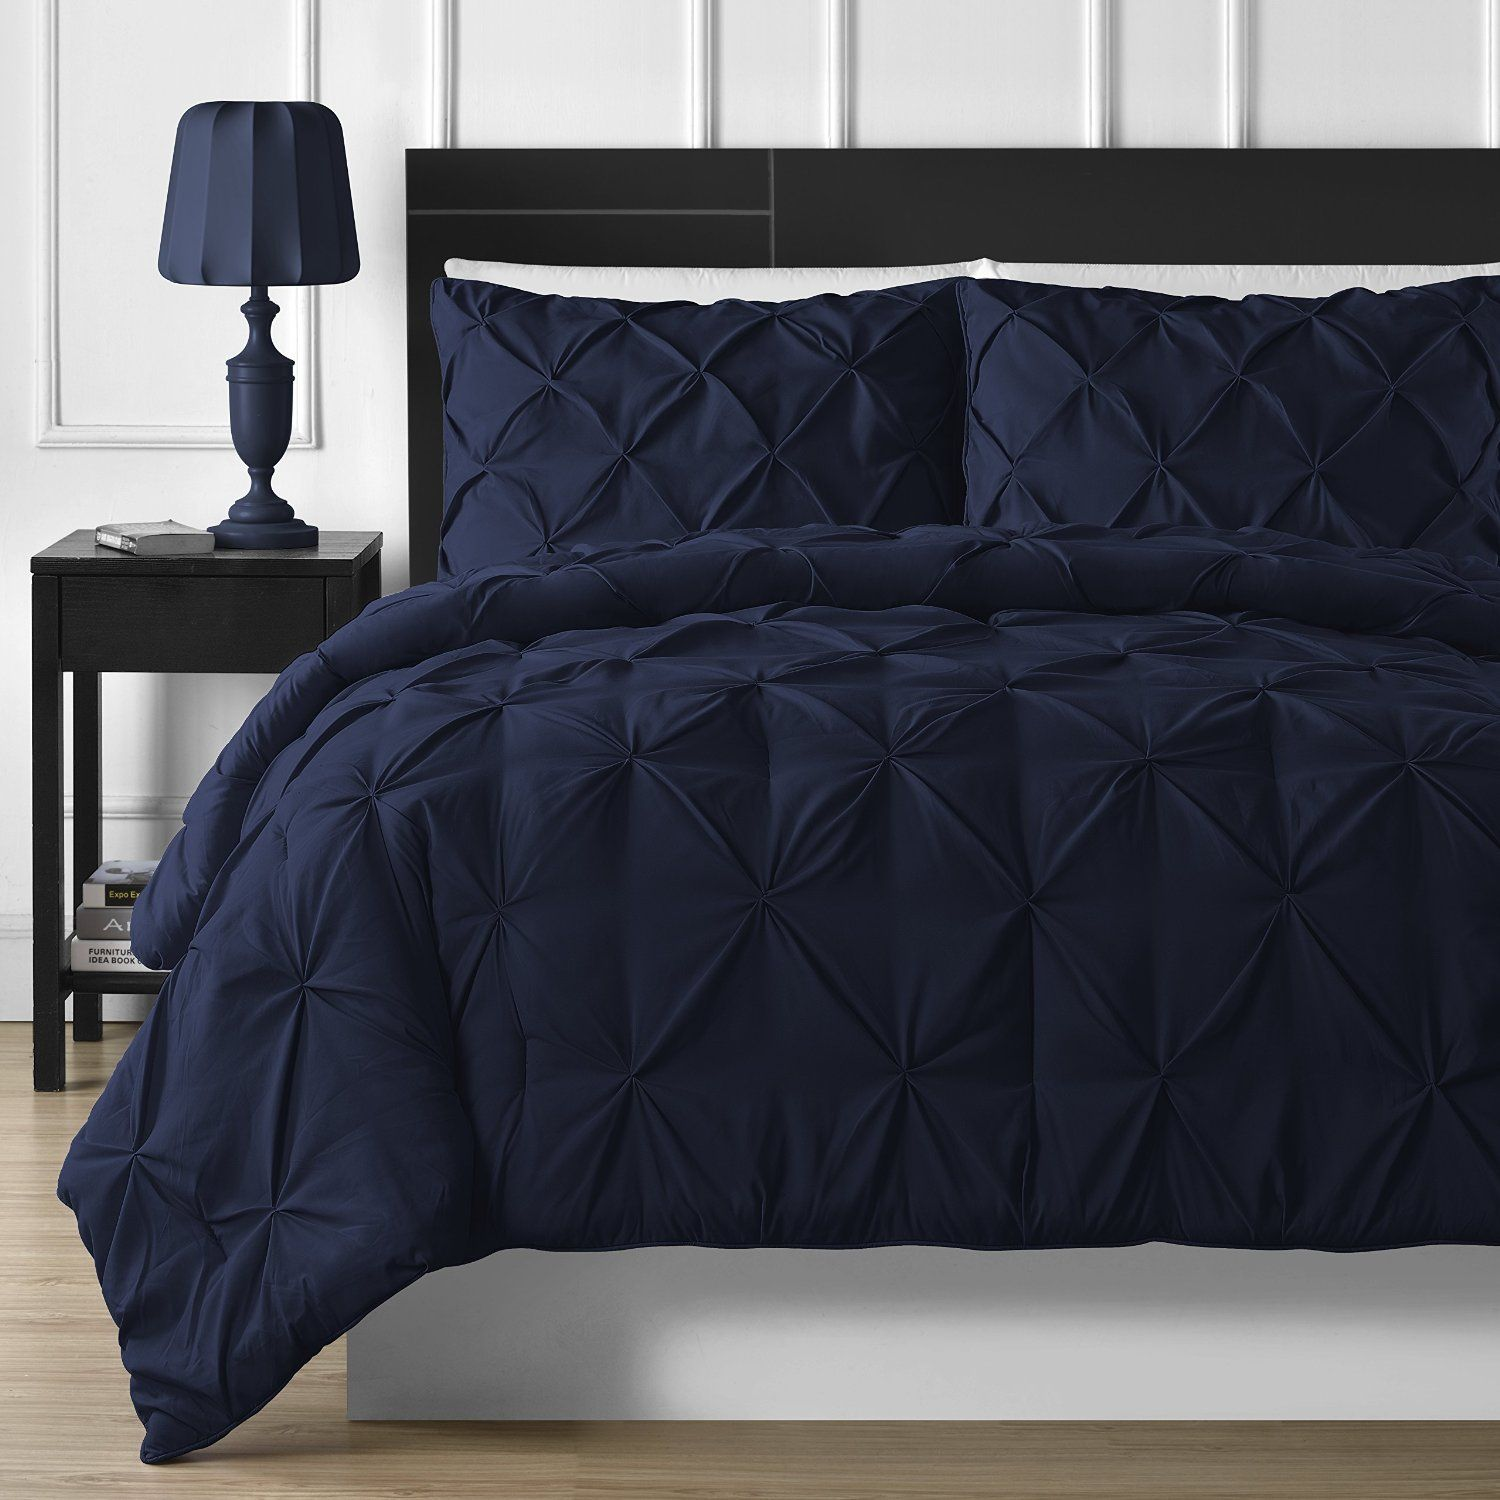 Royal Blue And Navy Bedding Sets Blue Bedding Sets Comforter Sets Navy Blue Bedding Sets